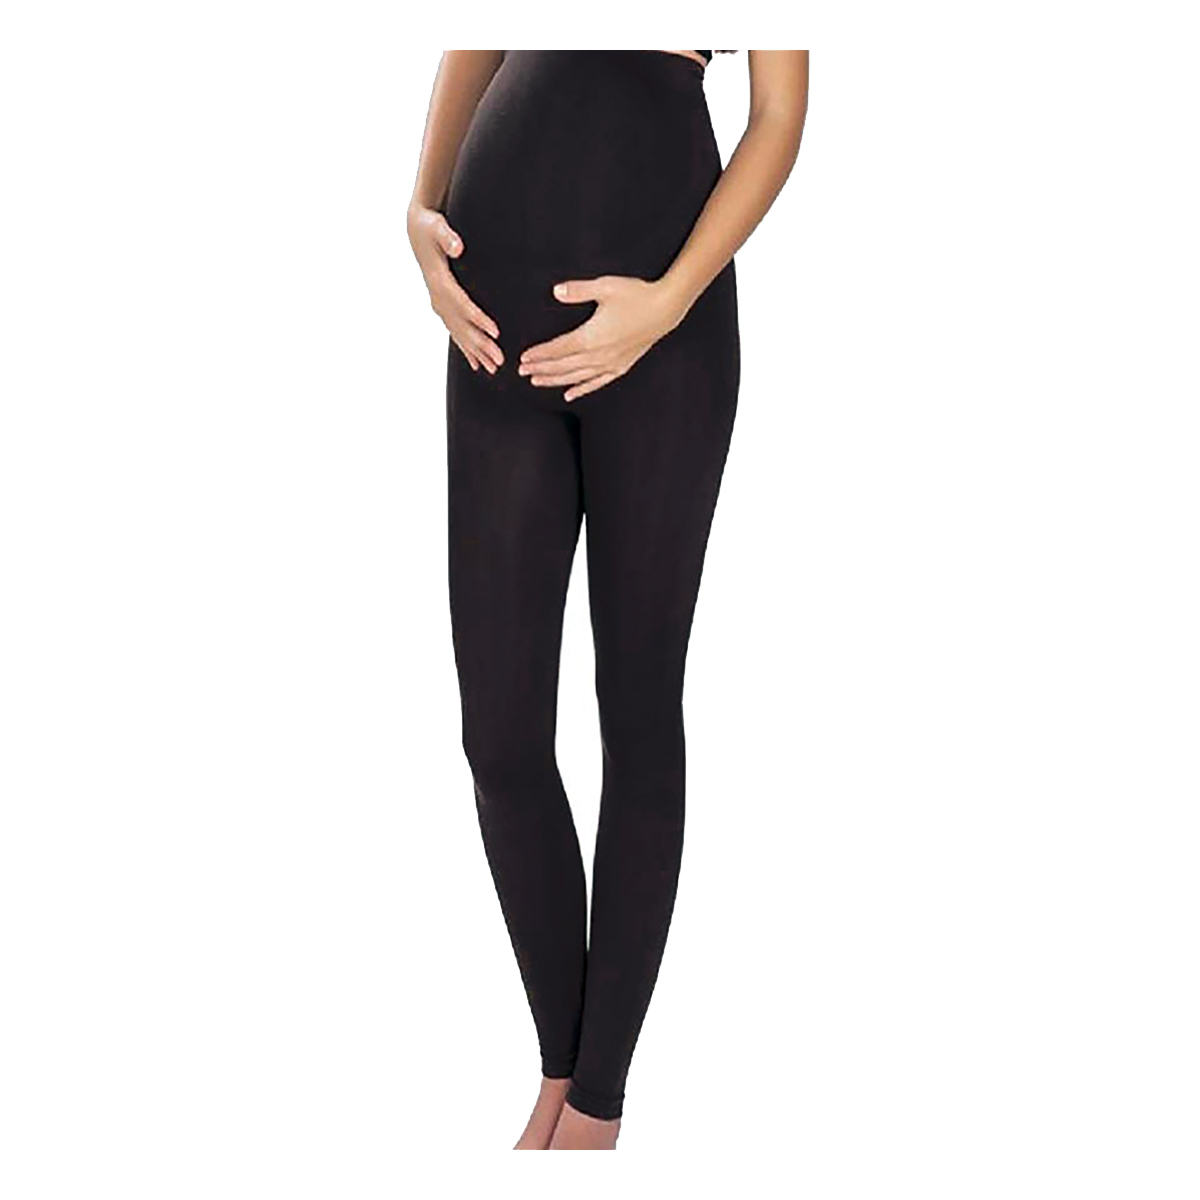 Mother's Essentials Maternity Leggings Pants